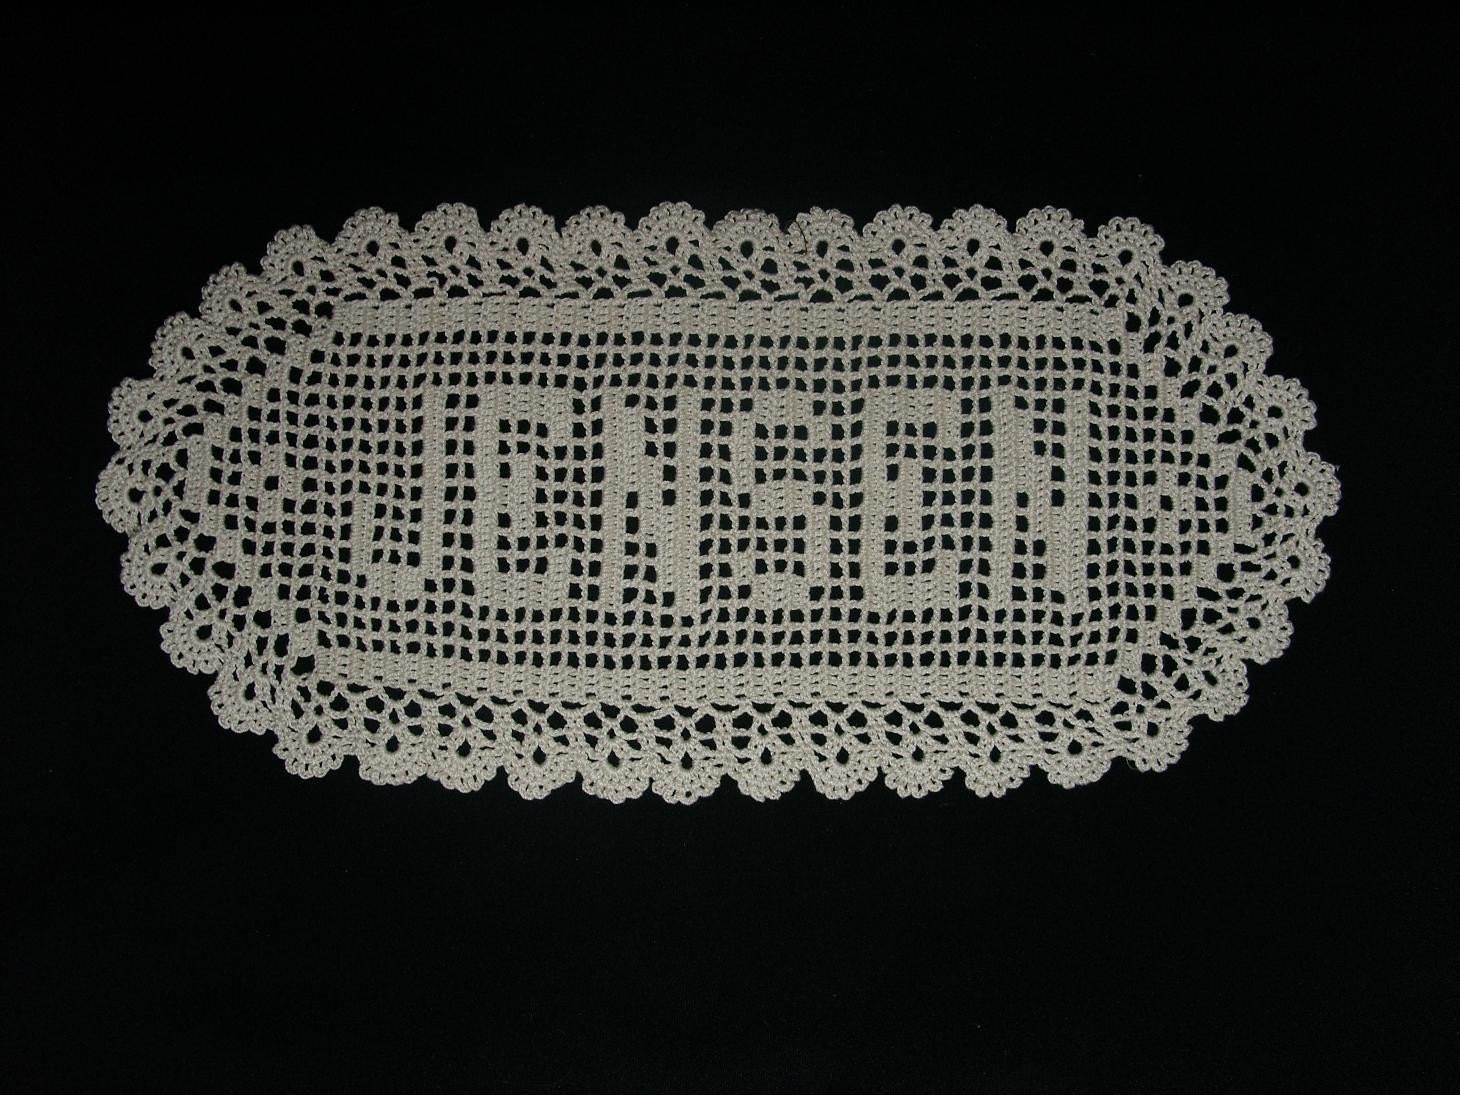 Free Alphabet Filet Crochet Patterns Crochet Patterns LZK Gallery